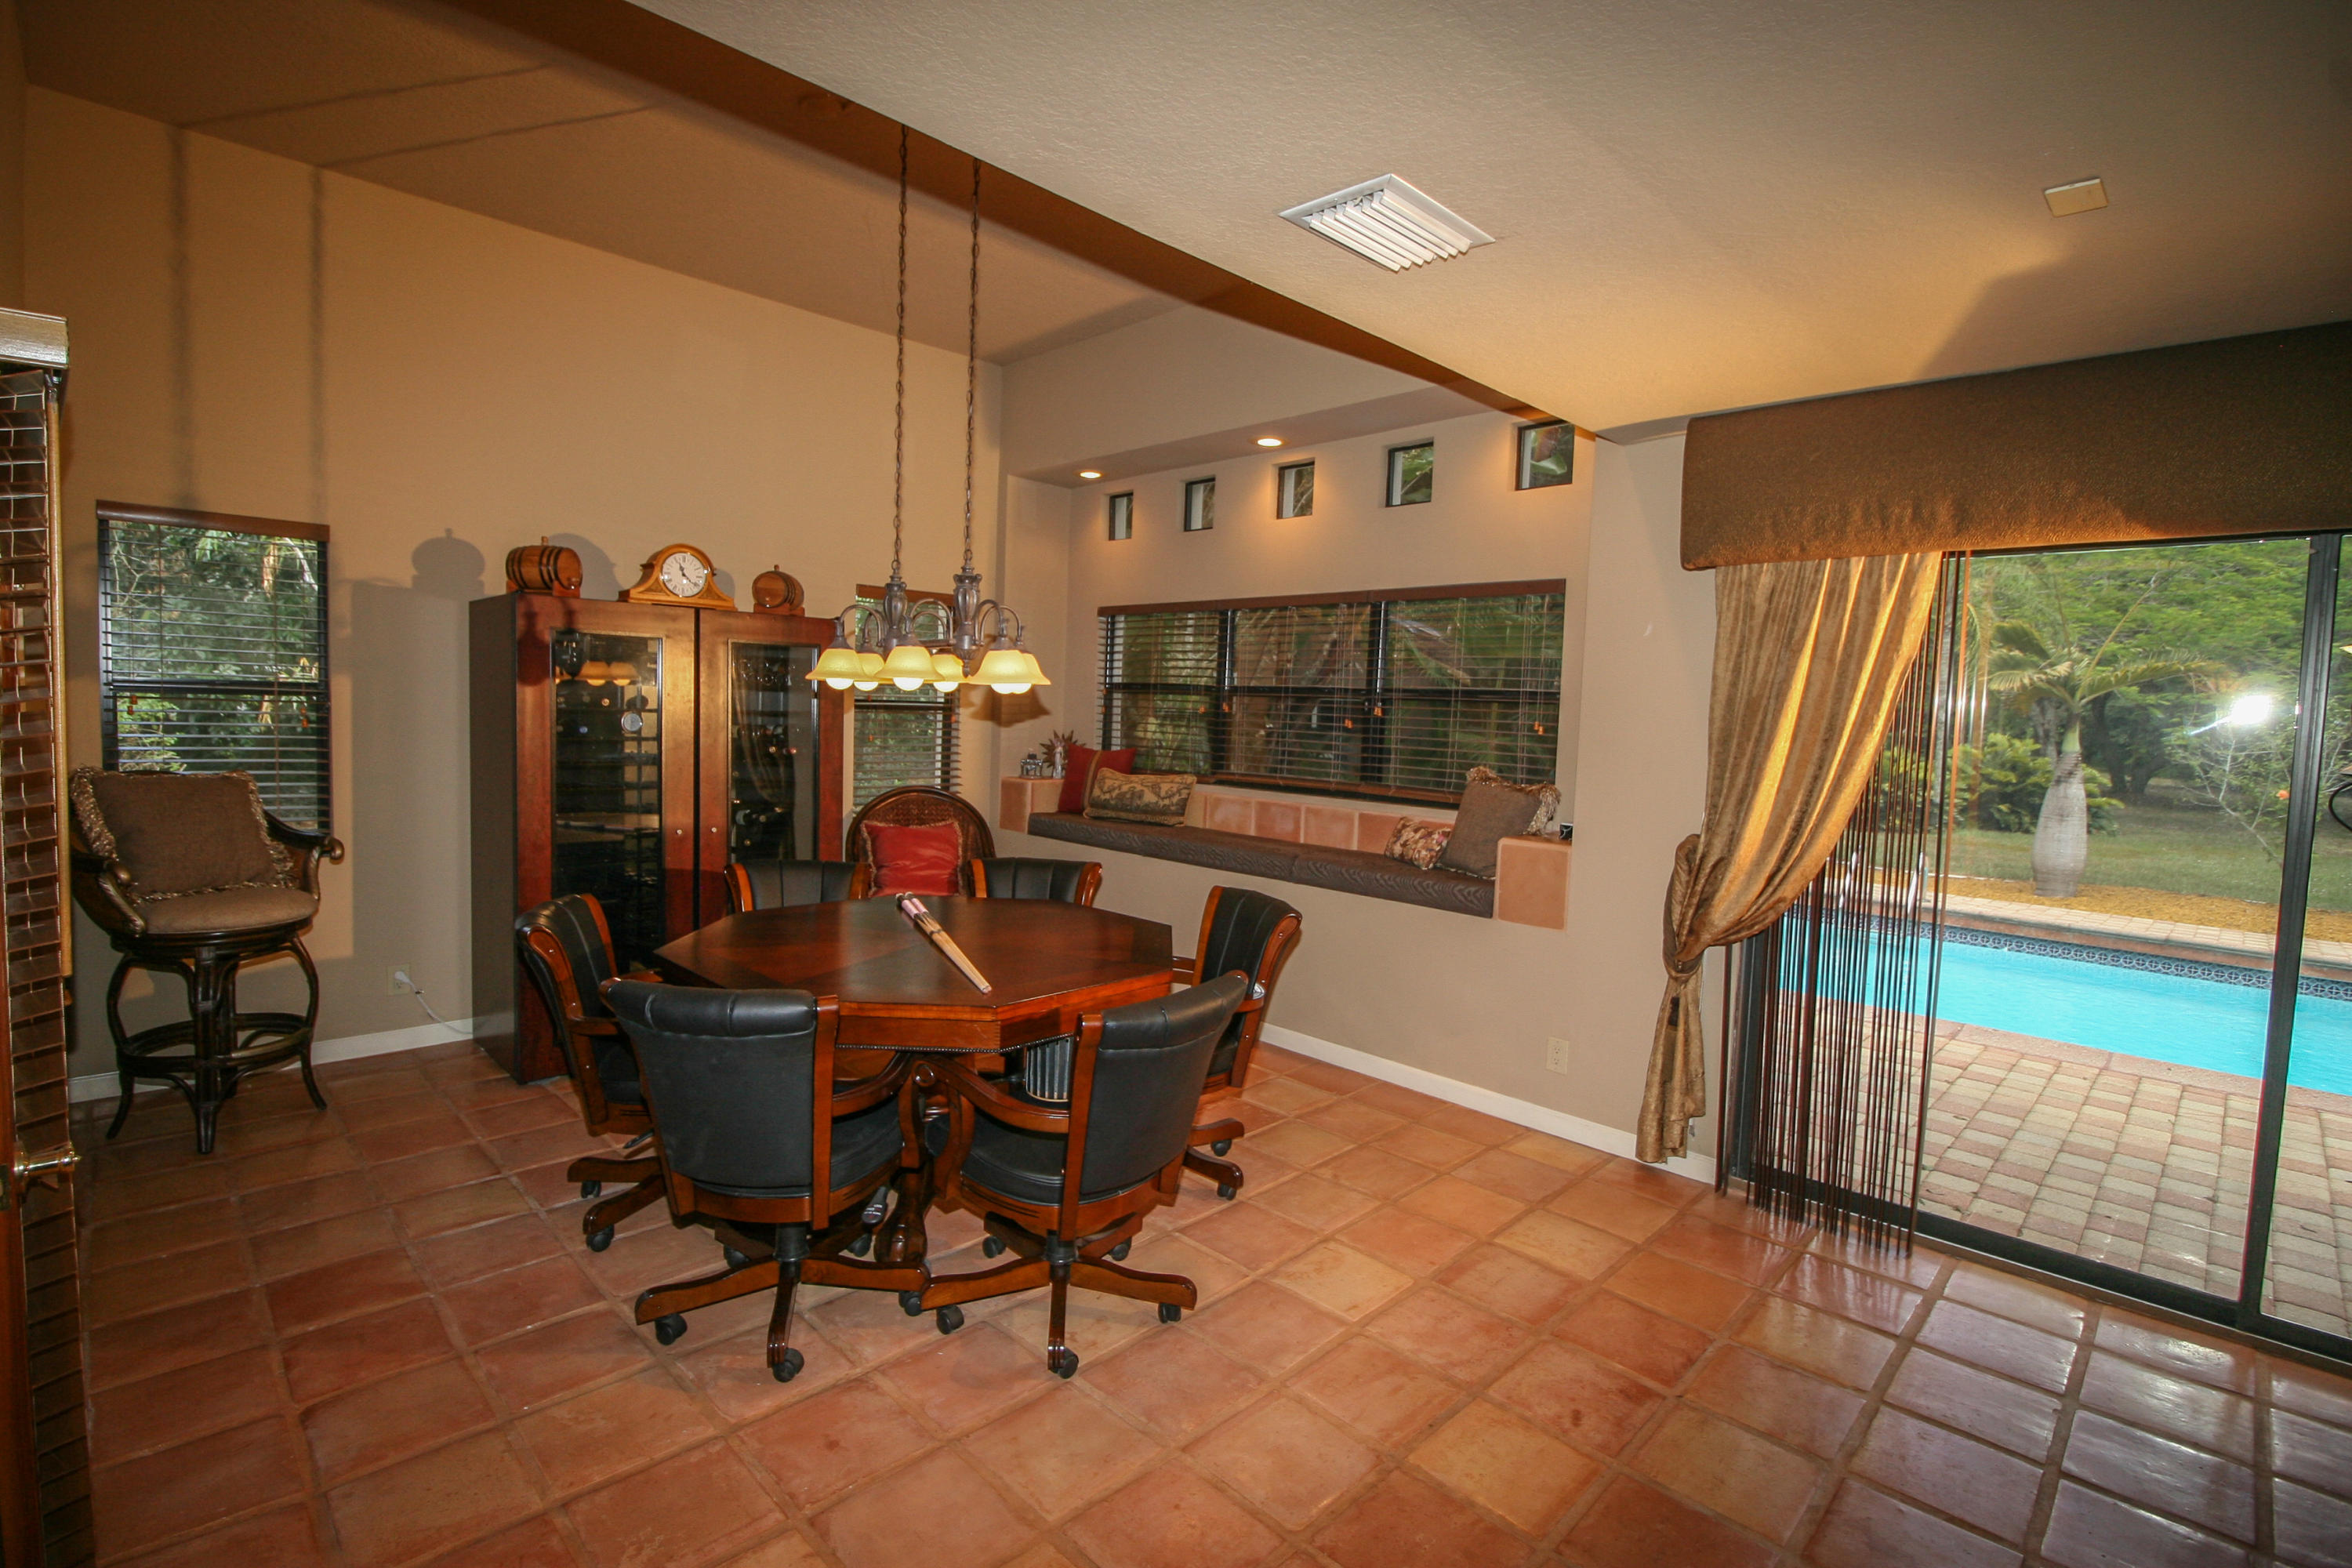 LITTLE RANCHES HOMES FOR SALE